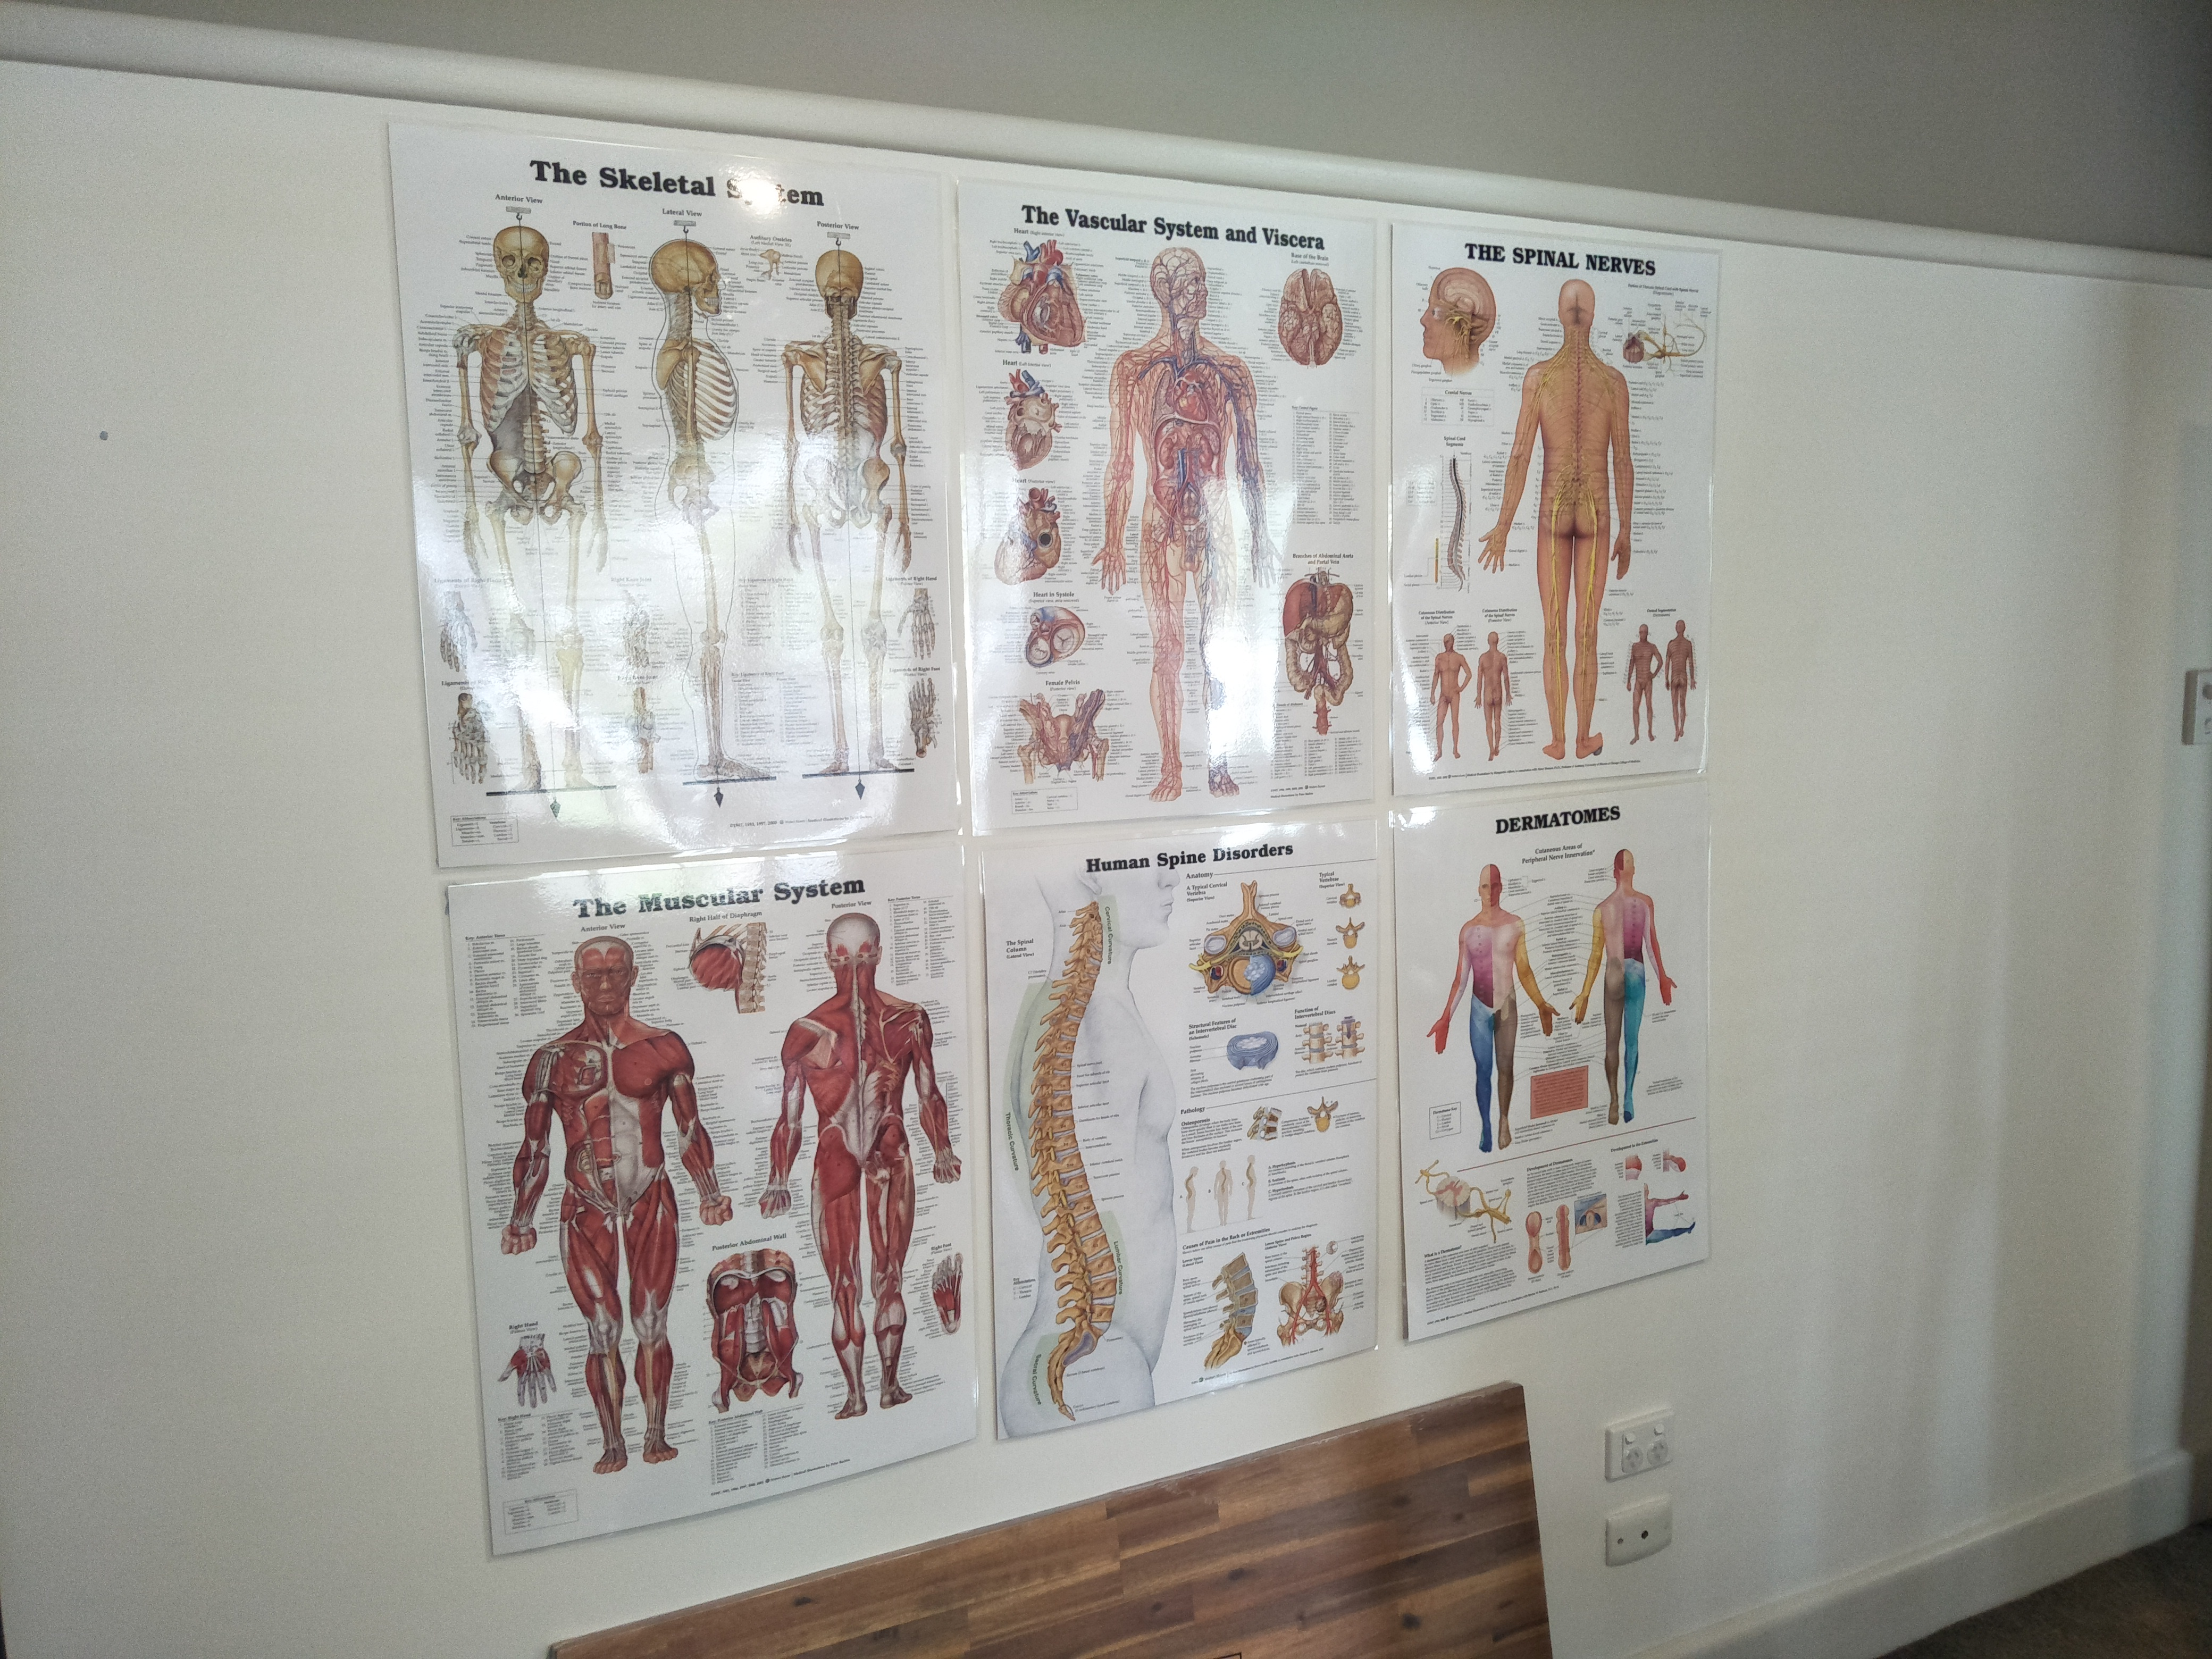 Anatomy posters.